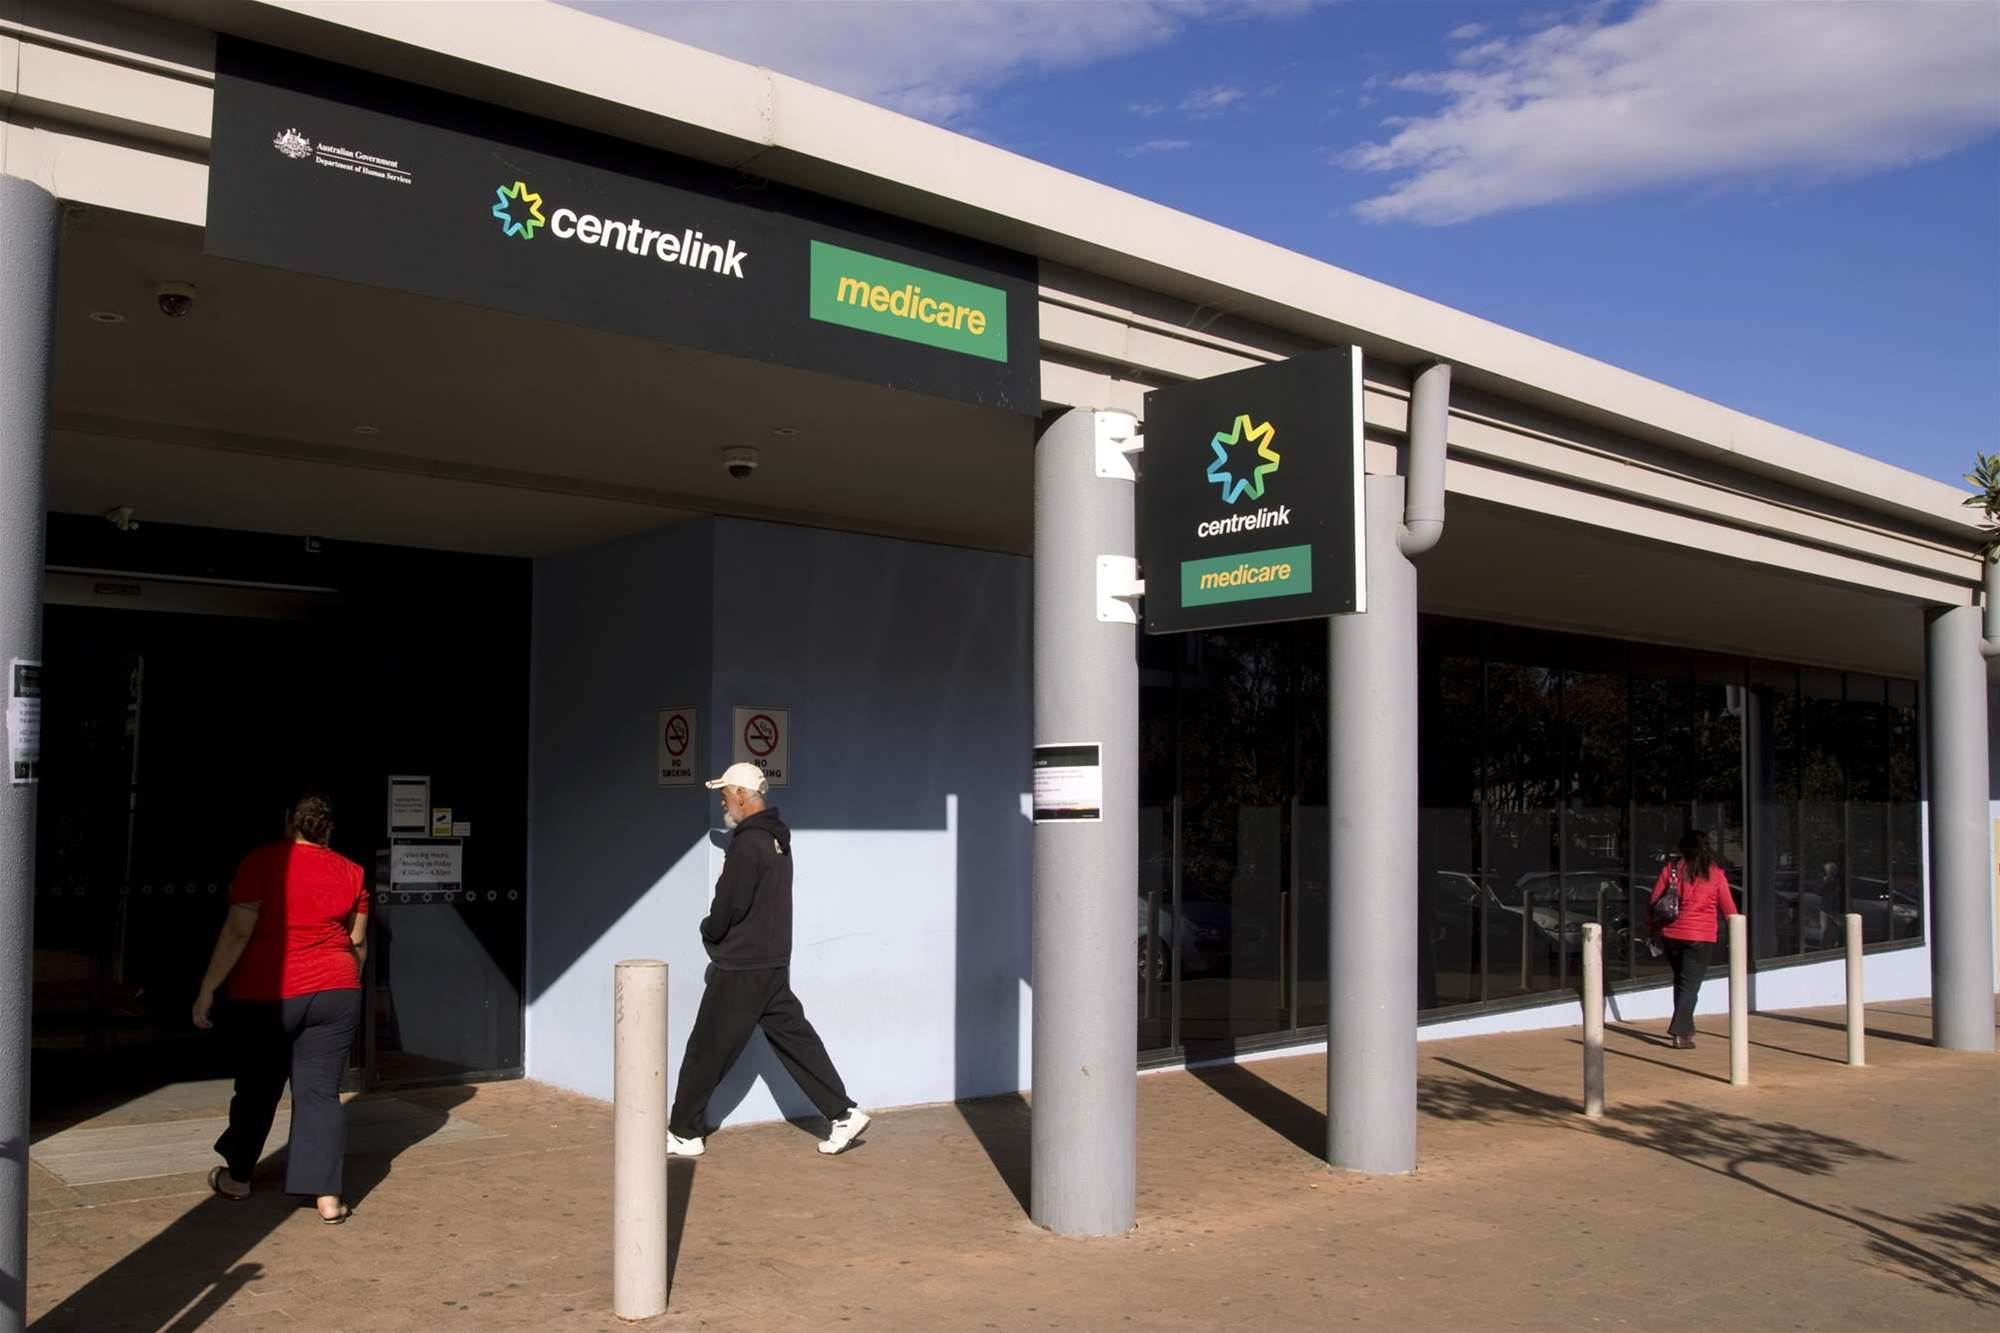 Centrelink's online services fall over again